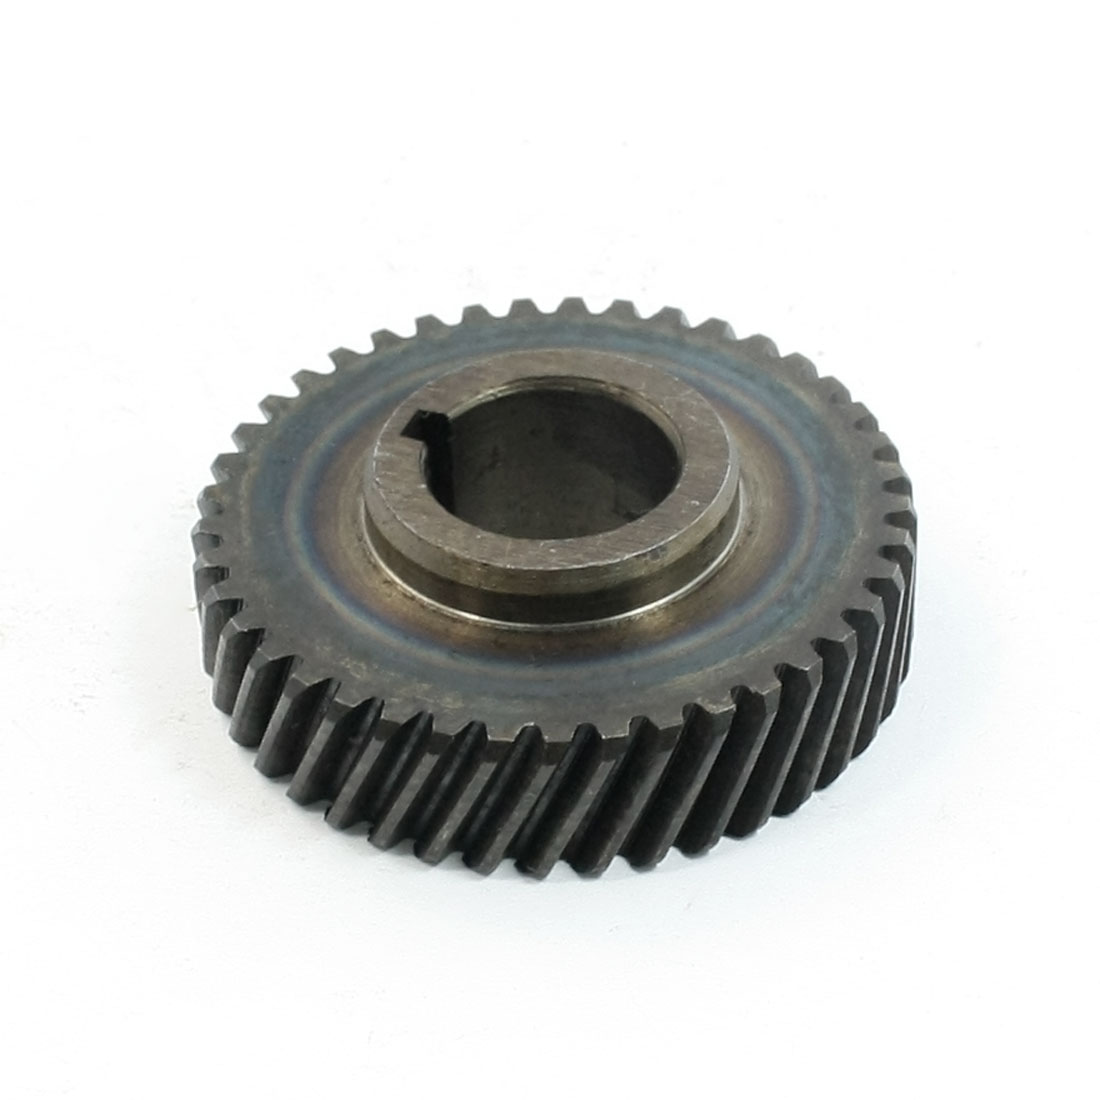 Miter Saw Repairing Part Helical Gear Wheel for Makita 1440